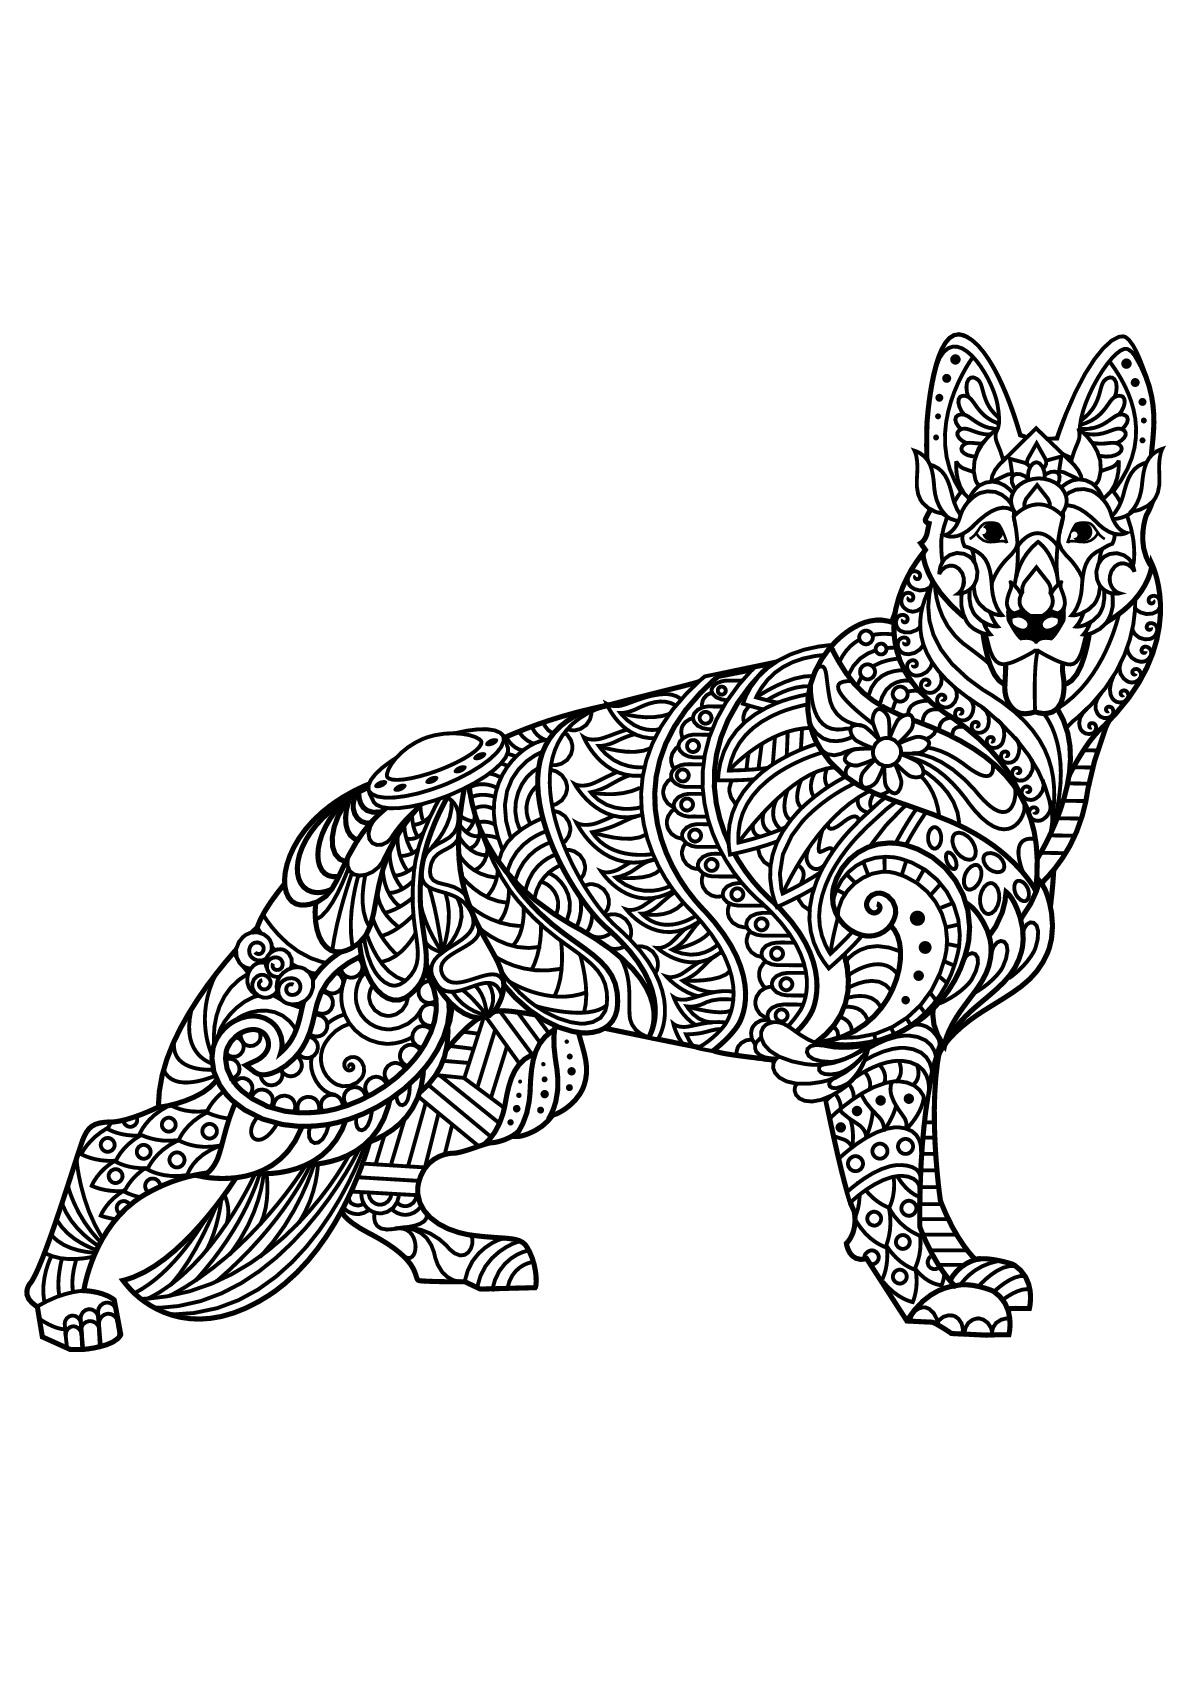 It's just a photo of Accomplished Adult Coloring Page Dog